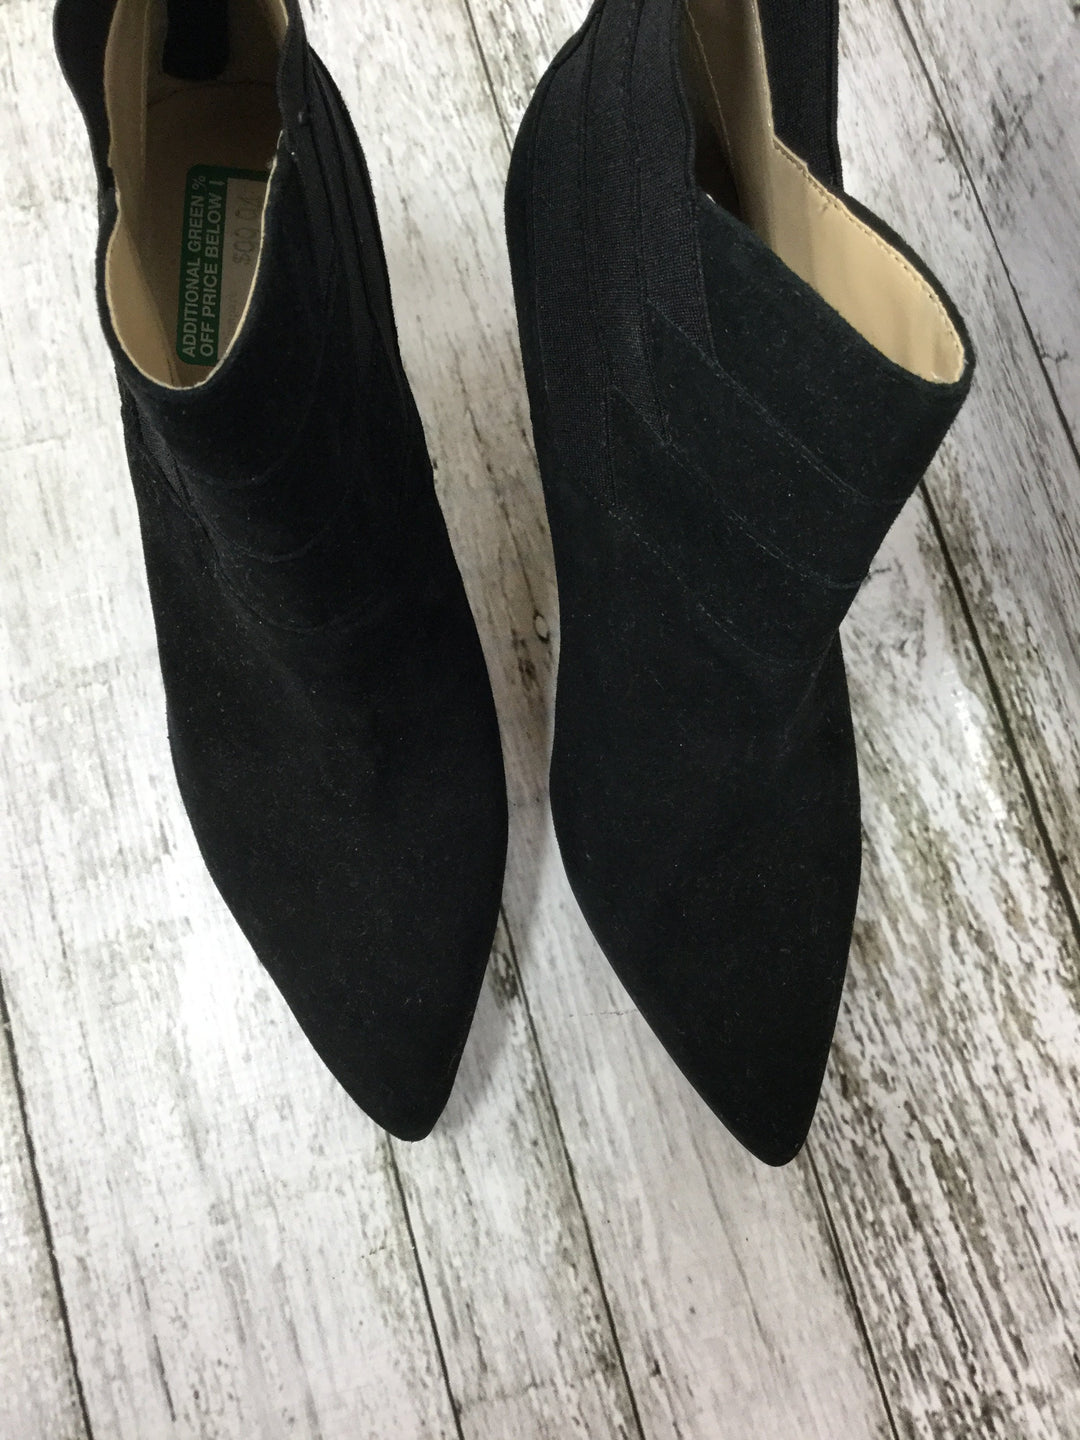 Photo #3 - brand: adrienne vittadini , style: boots ankle , color: black , size: 7.5 , sku: 127-3371-41625, , suede booties with diagonal elastic and suede detail!